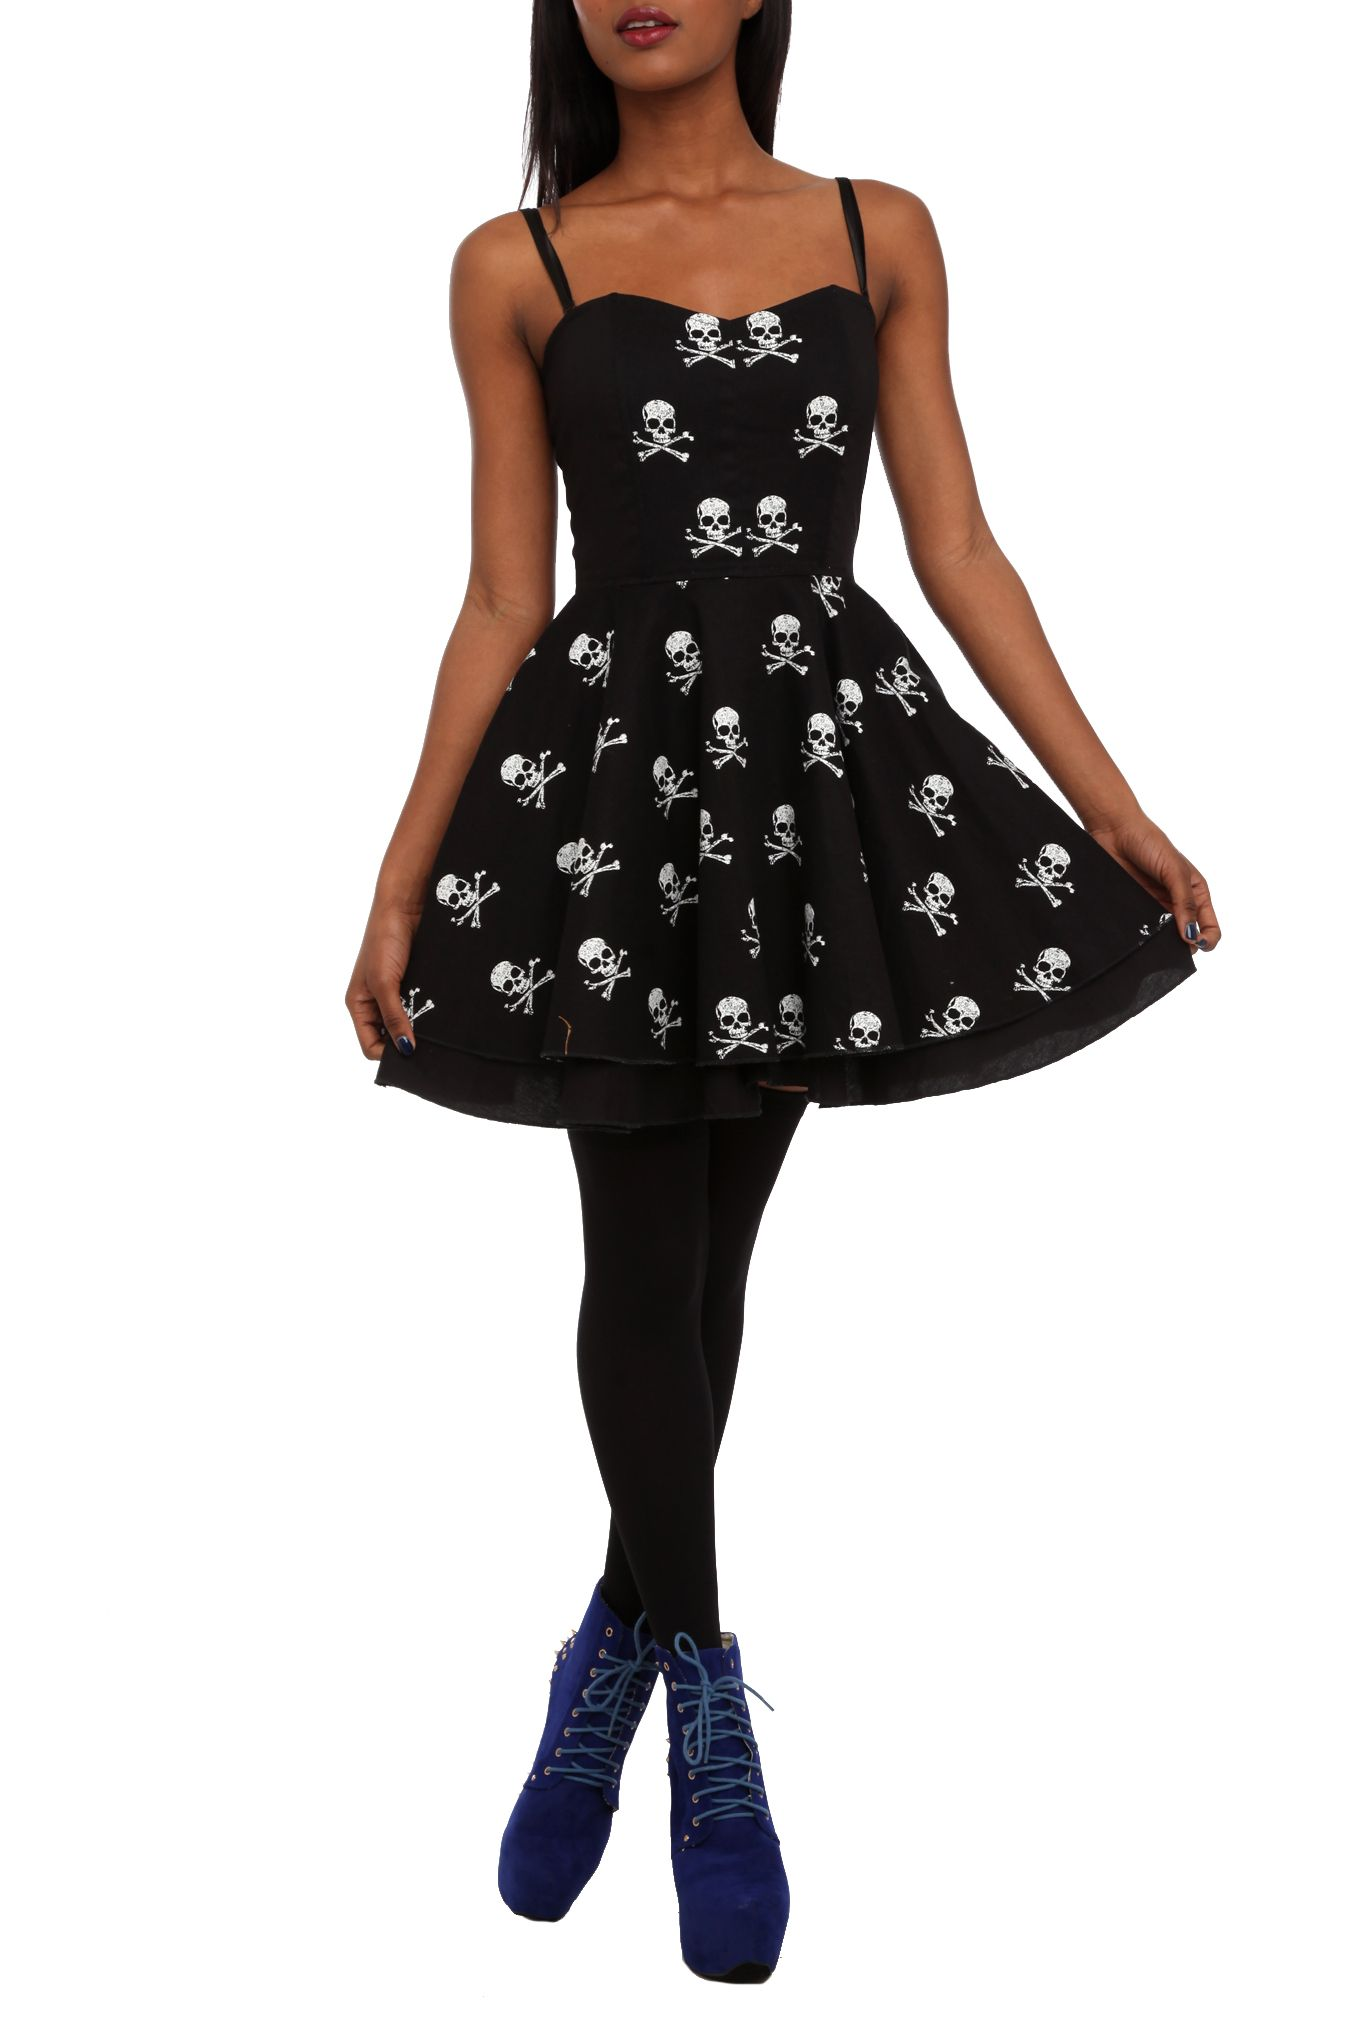 Skull Dress | Hot Topic | Clothes | Pinterest | Skull dress, Hot ...